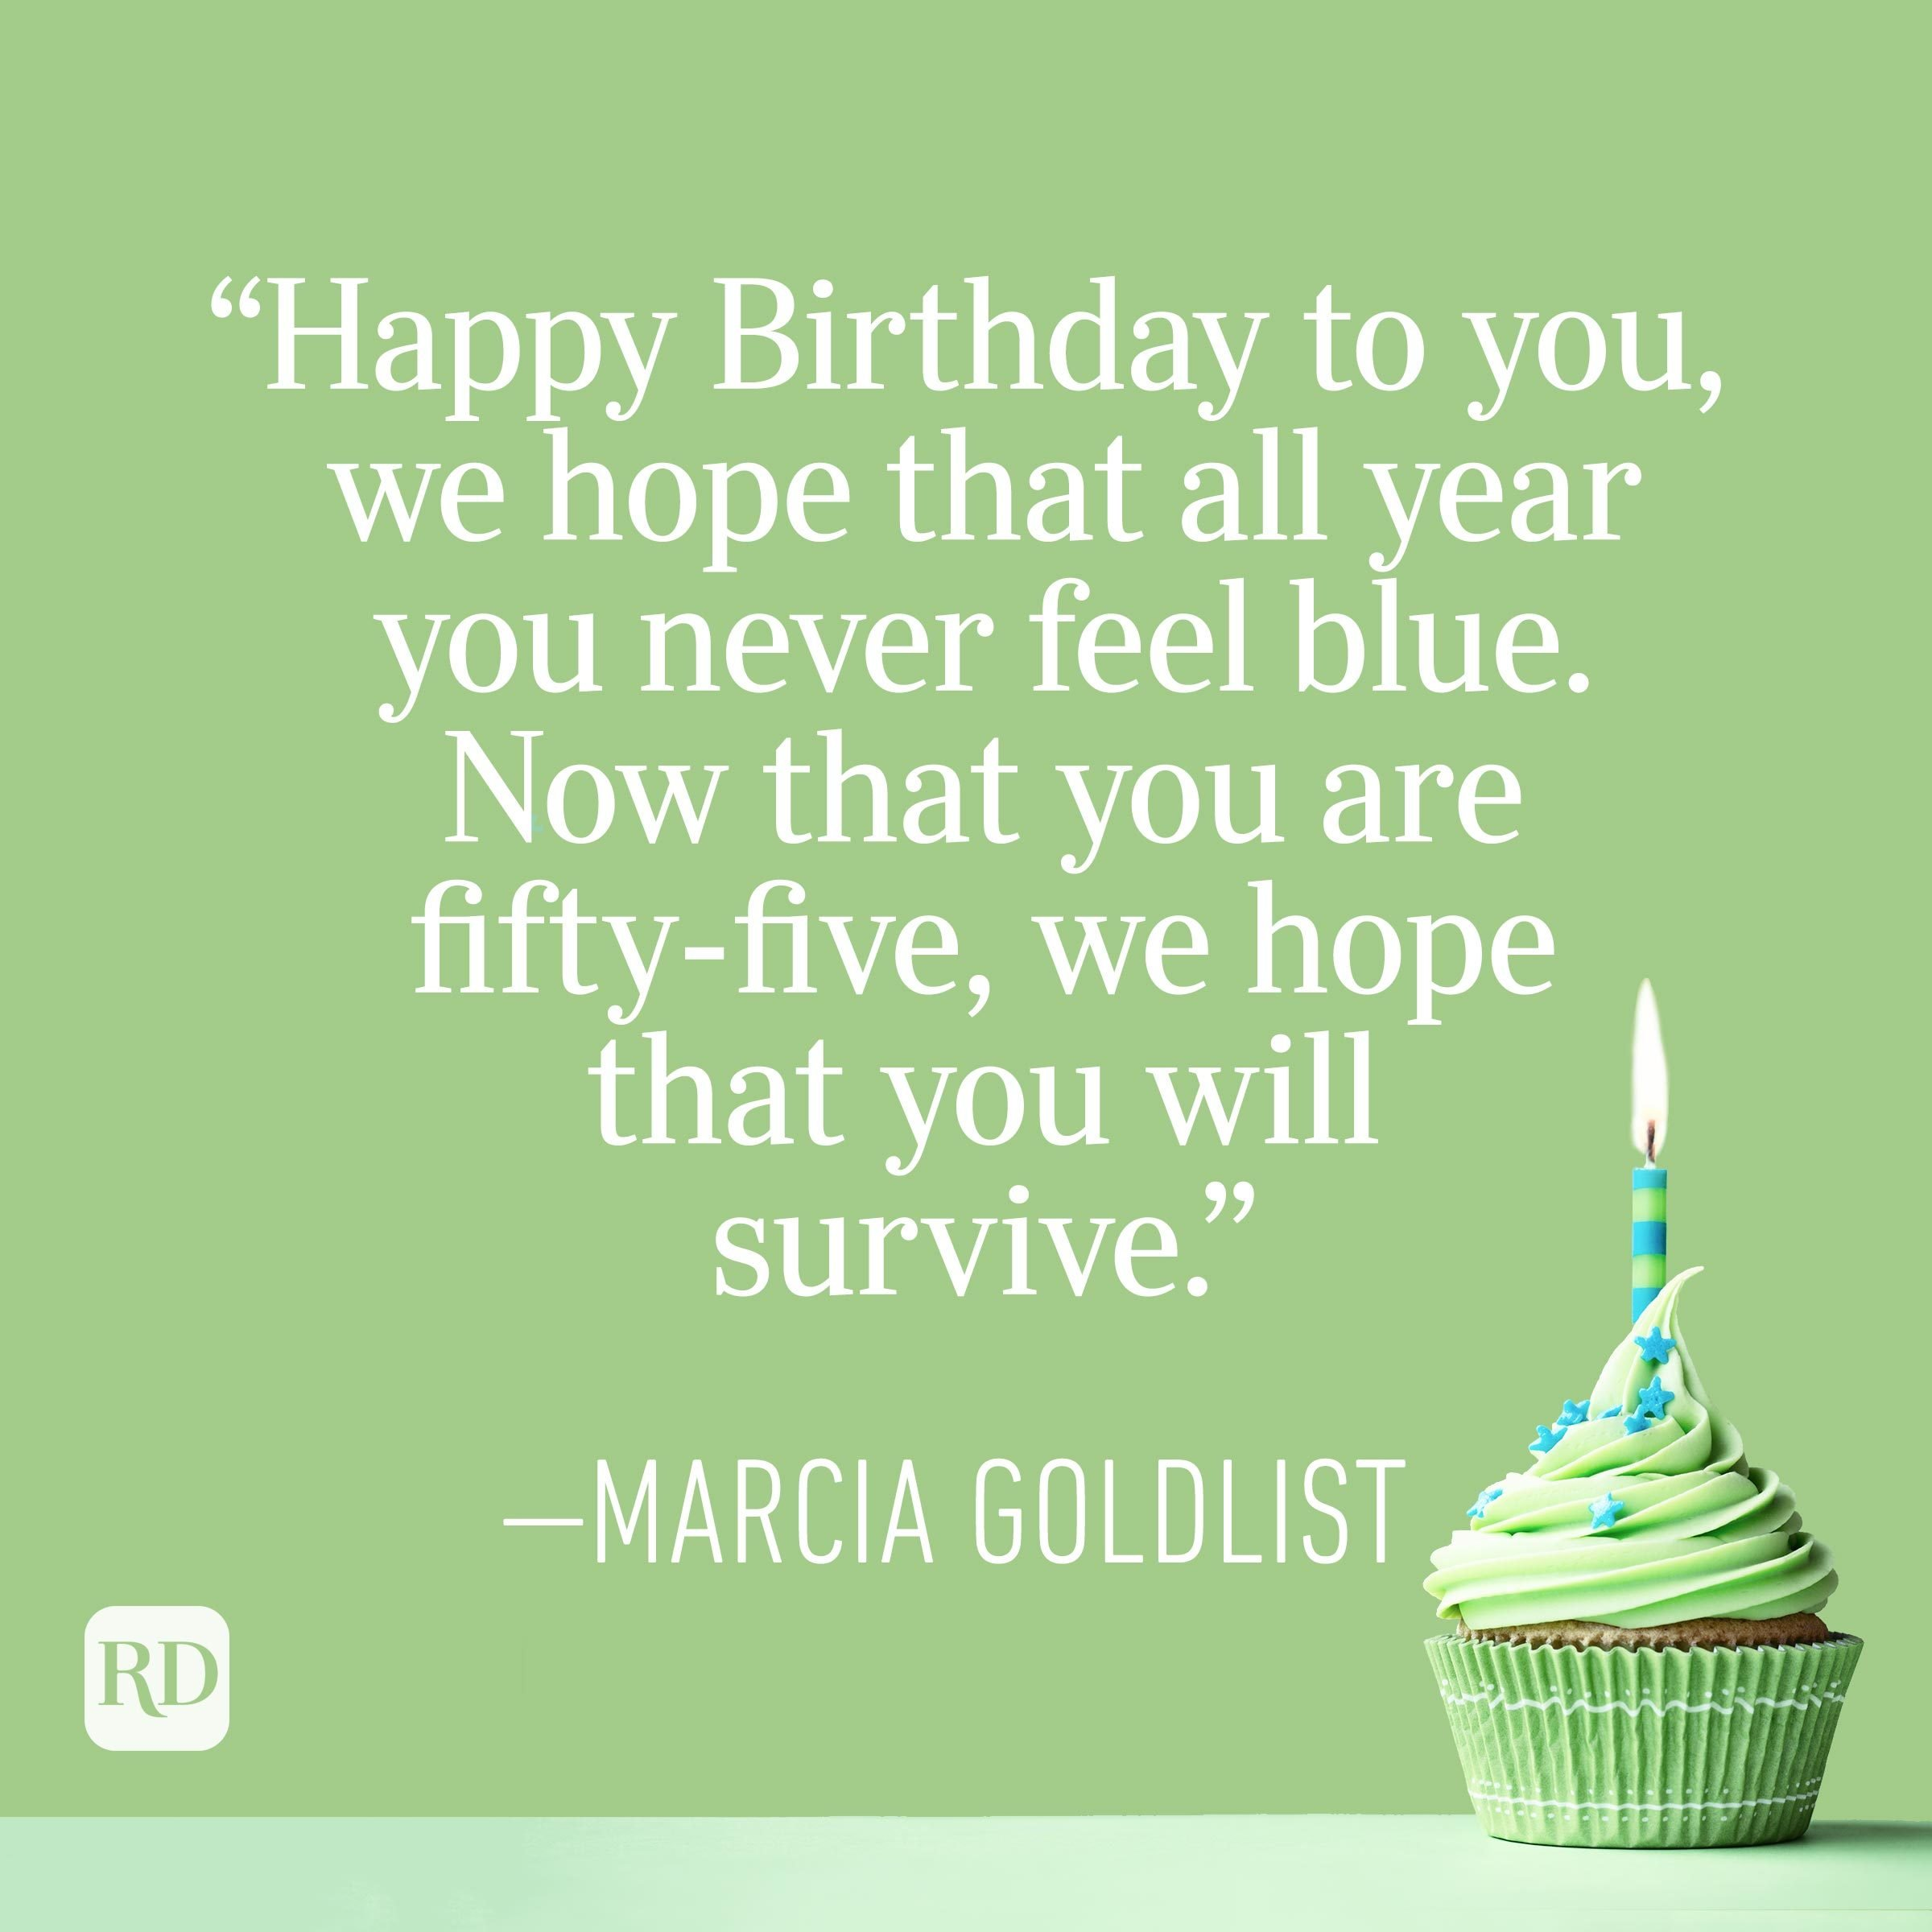 """""""Happy Birthday to you, we hope that all year you never feel blue. Now that you are fifty-five, we hope that you will survive."""" —Marcia Goldlist"""